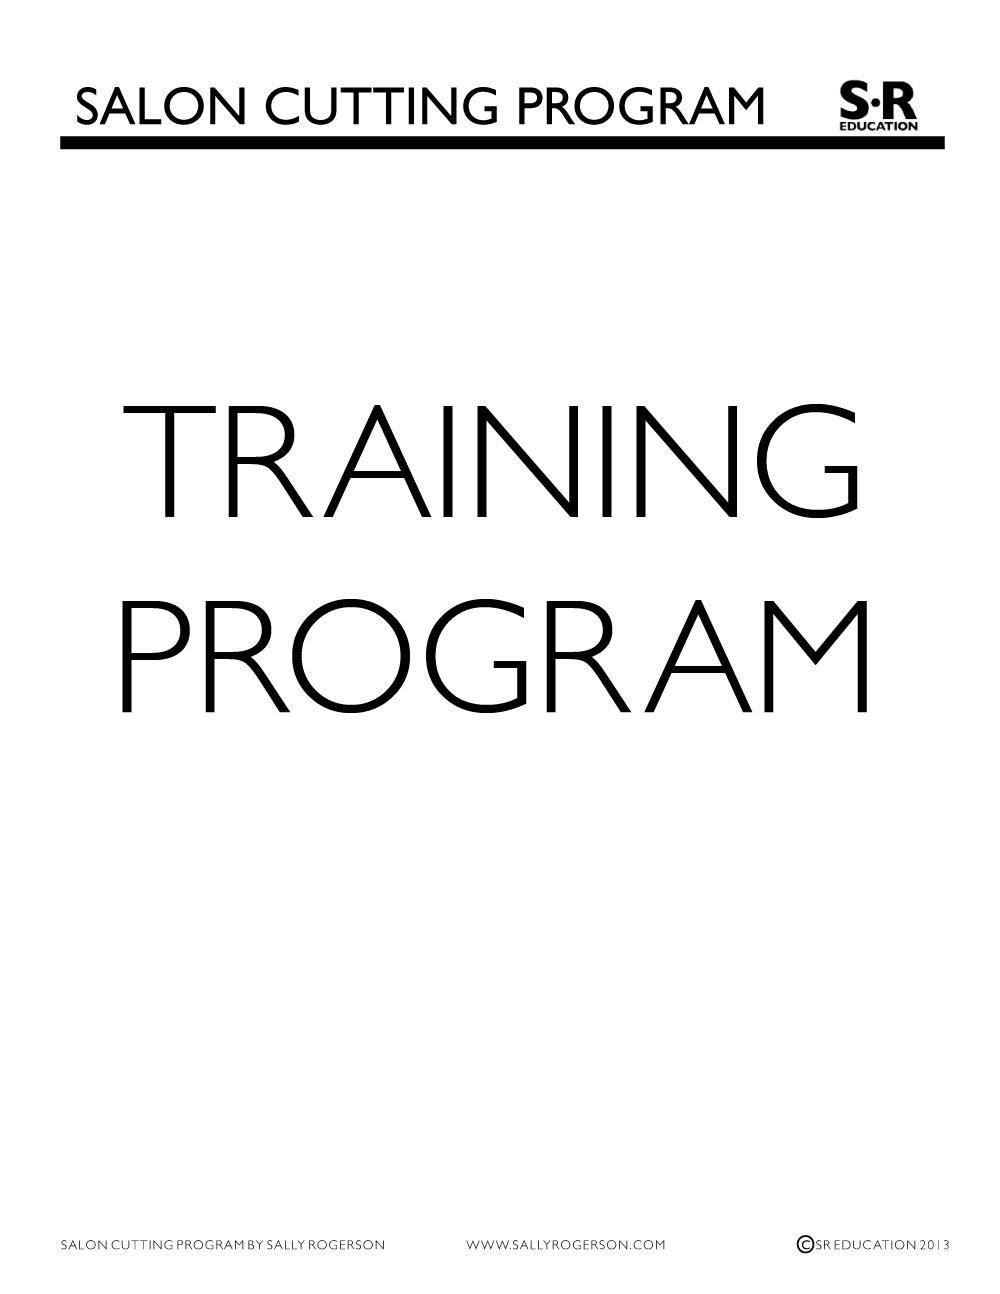 training program.jpg